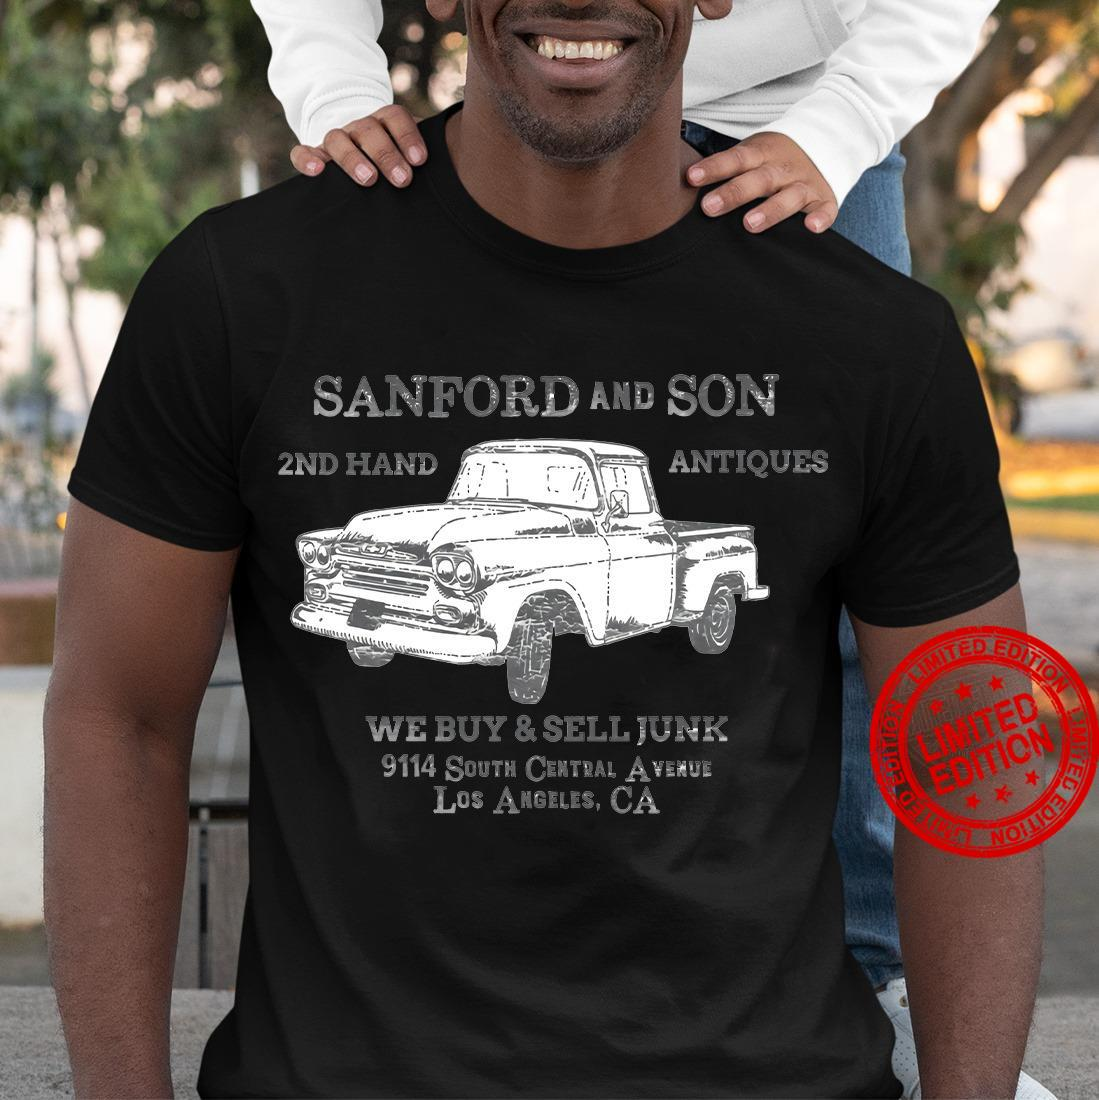 Sanford And Son 2nd Hand Antiques We Buy & Sell Junk Shirt